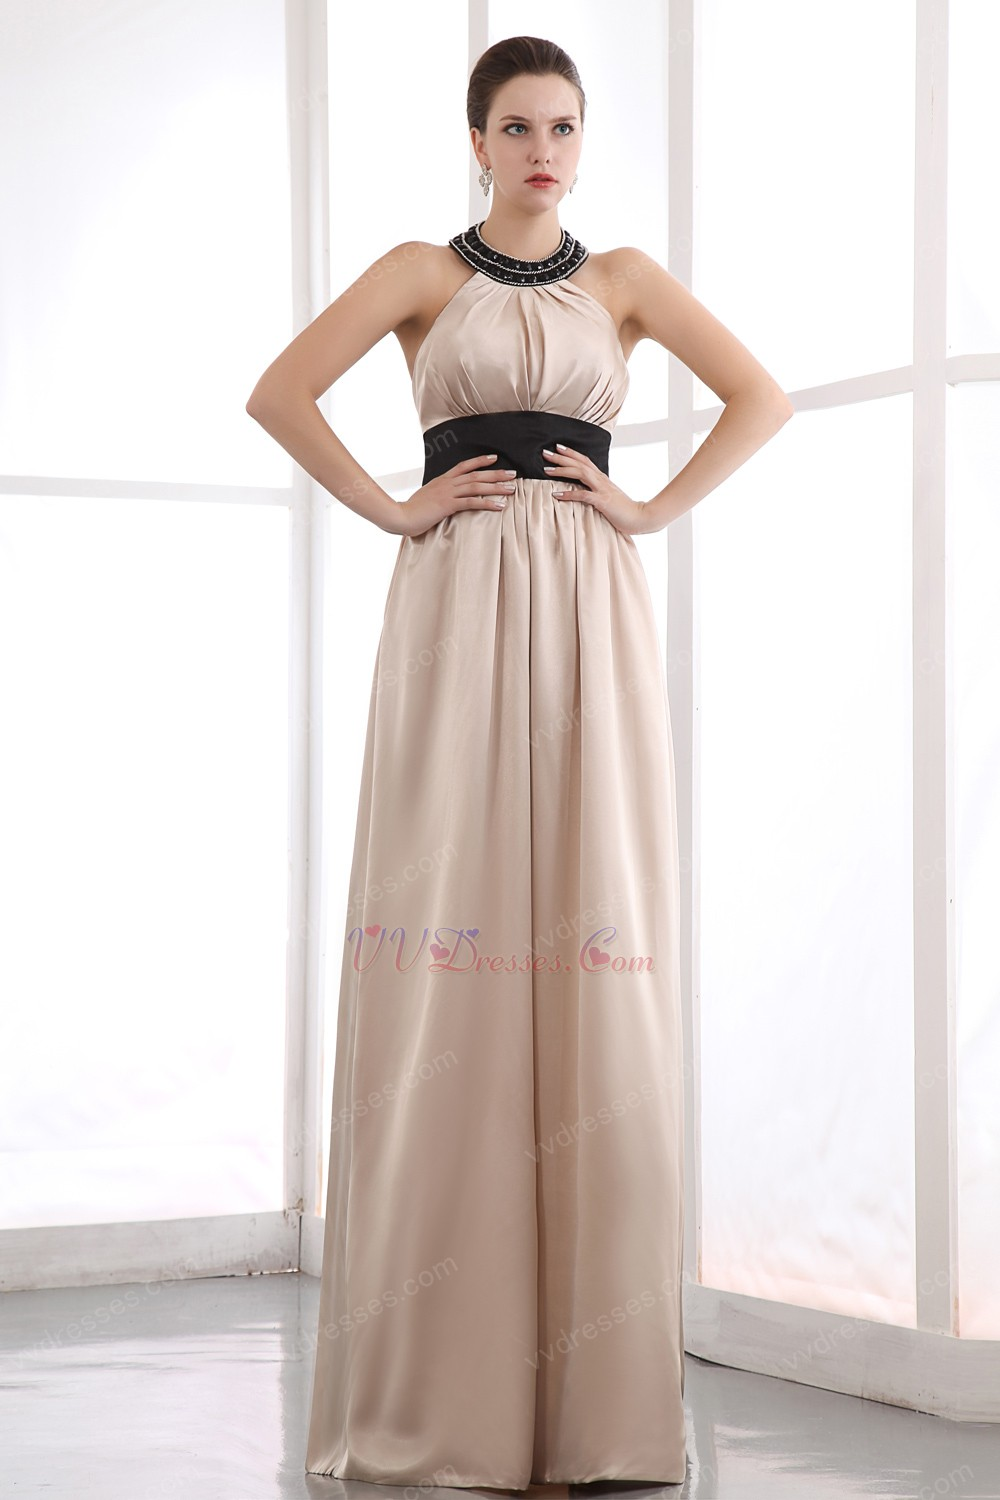 Beautiful Halter Black Belt Champagne Women Evening Wear